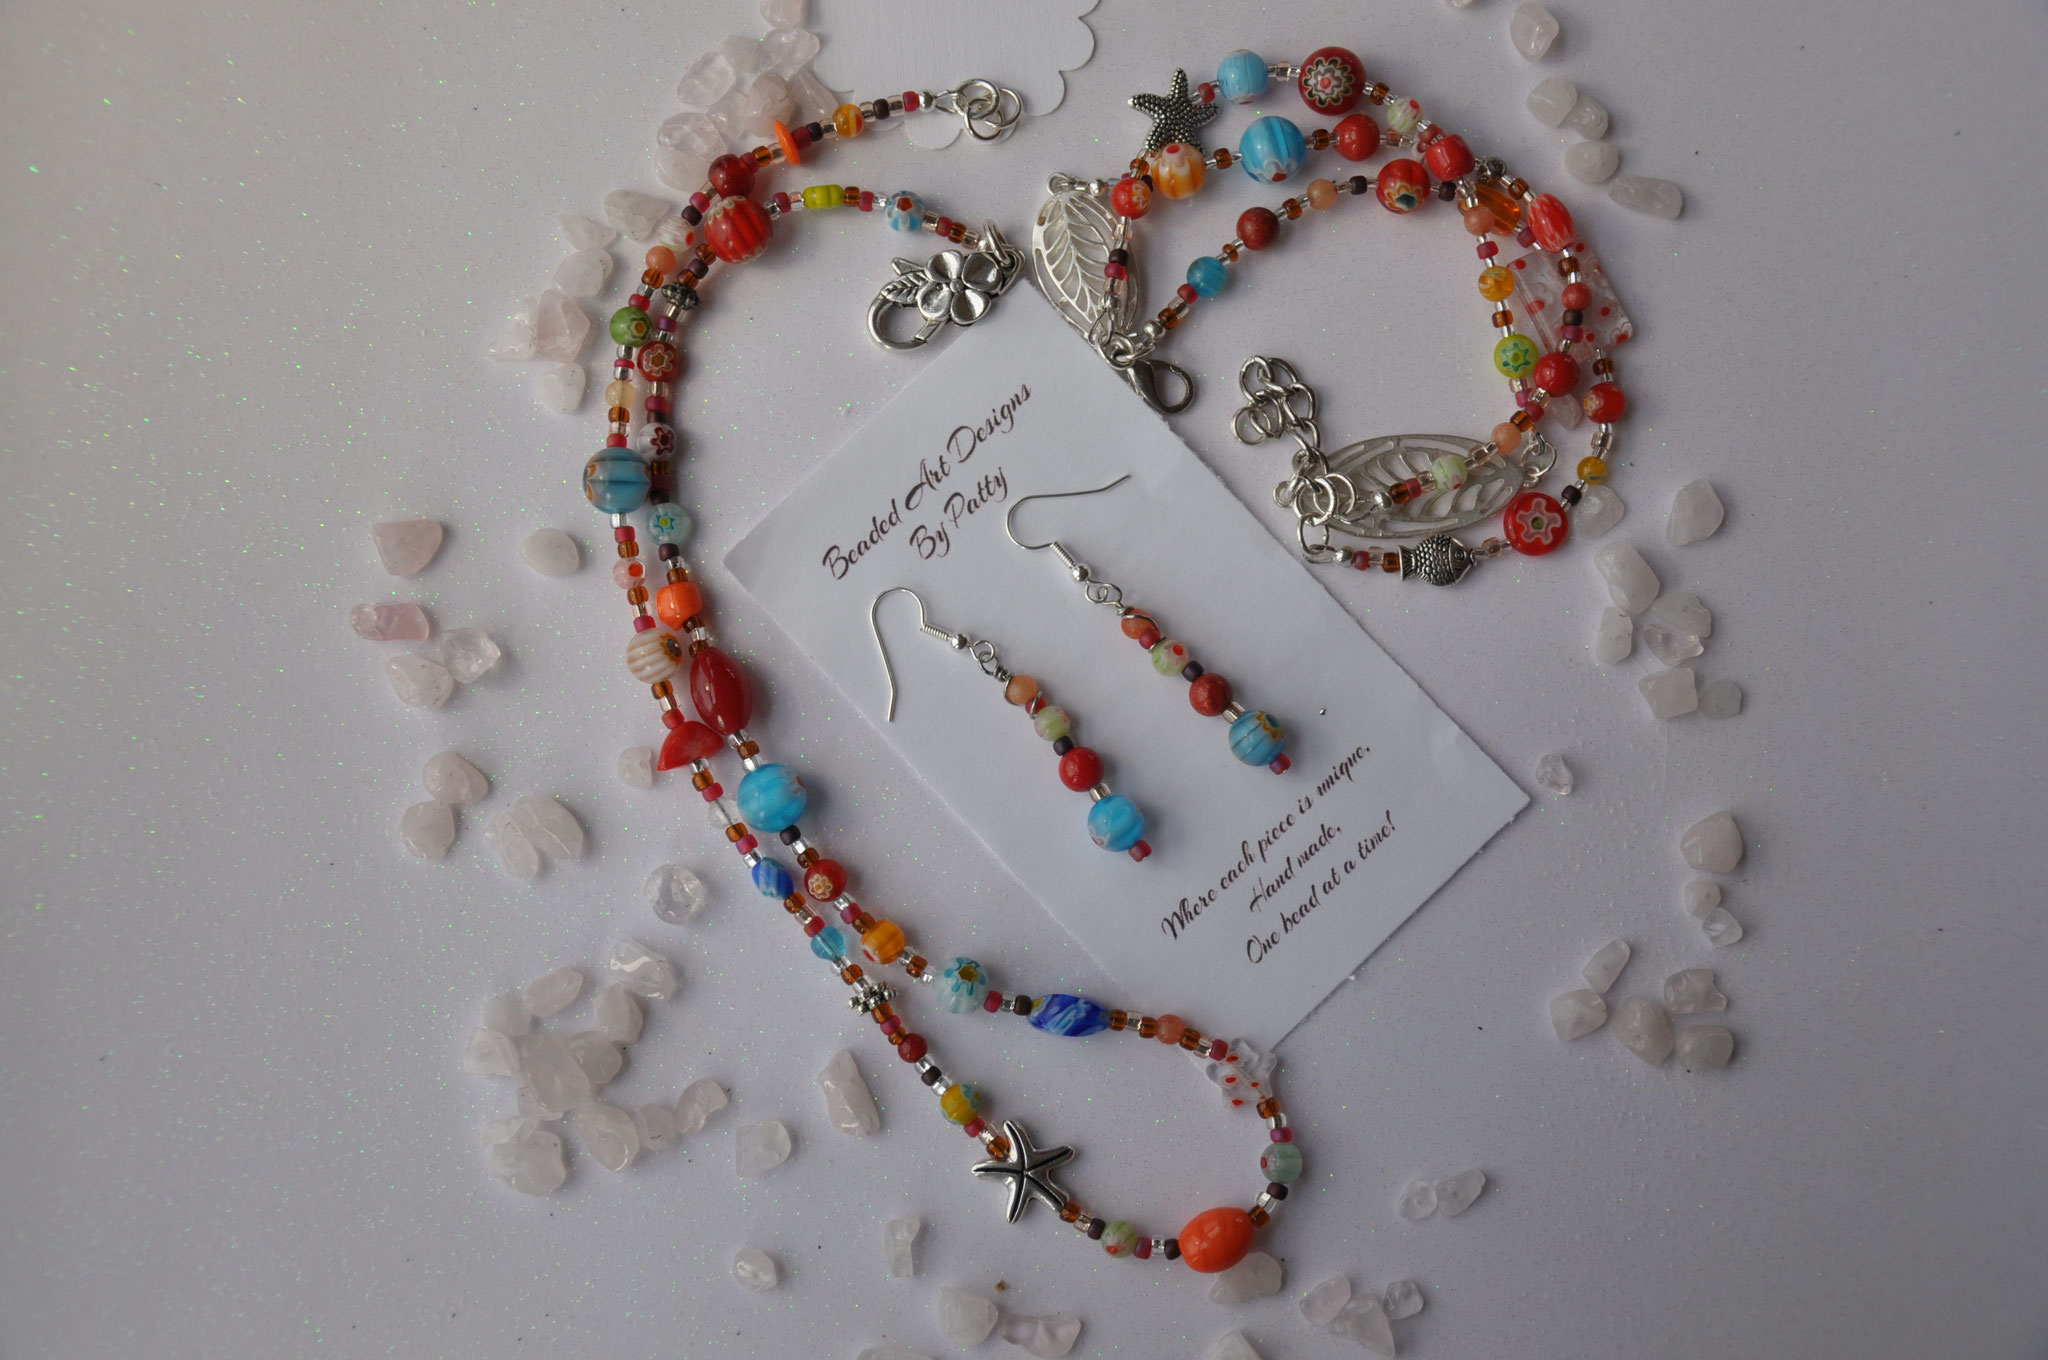 Flowers on the Beach  Beads: Millefiori Glass, seed, Metal and quartzite  adjustable triple wrap bracelet $25.00 ( 6 1/4 to 8 inch wrist)  necklace $25.00 (20 inches)  earrings $15.00